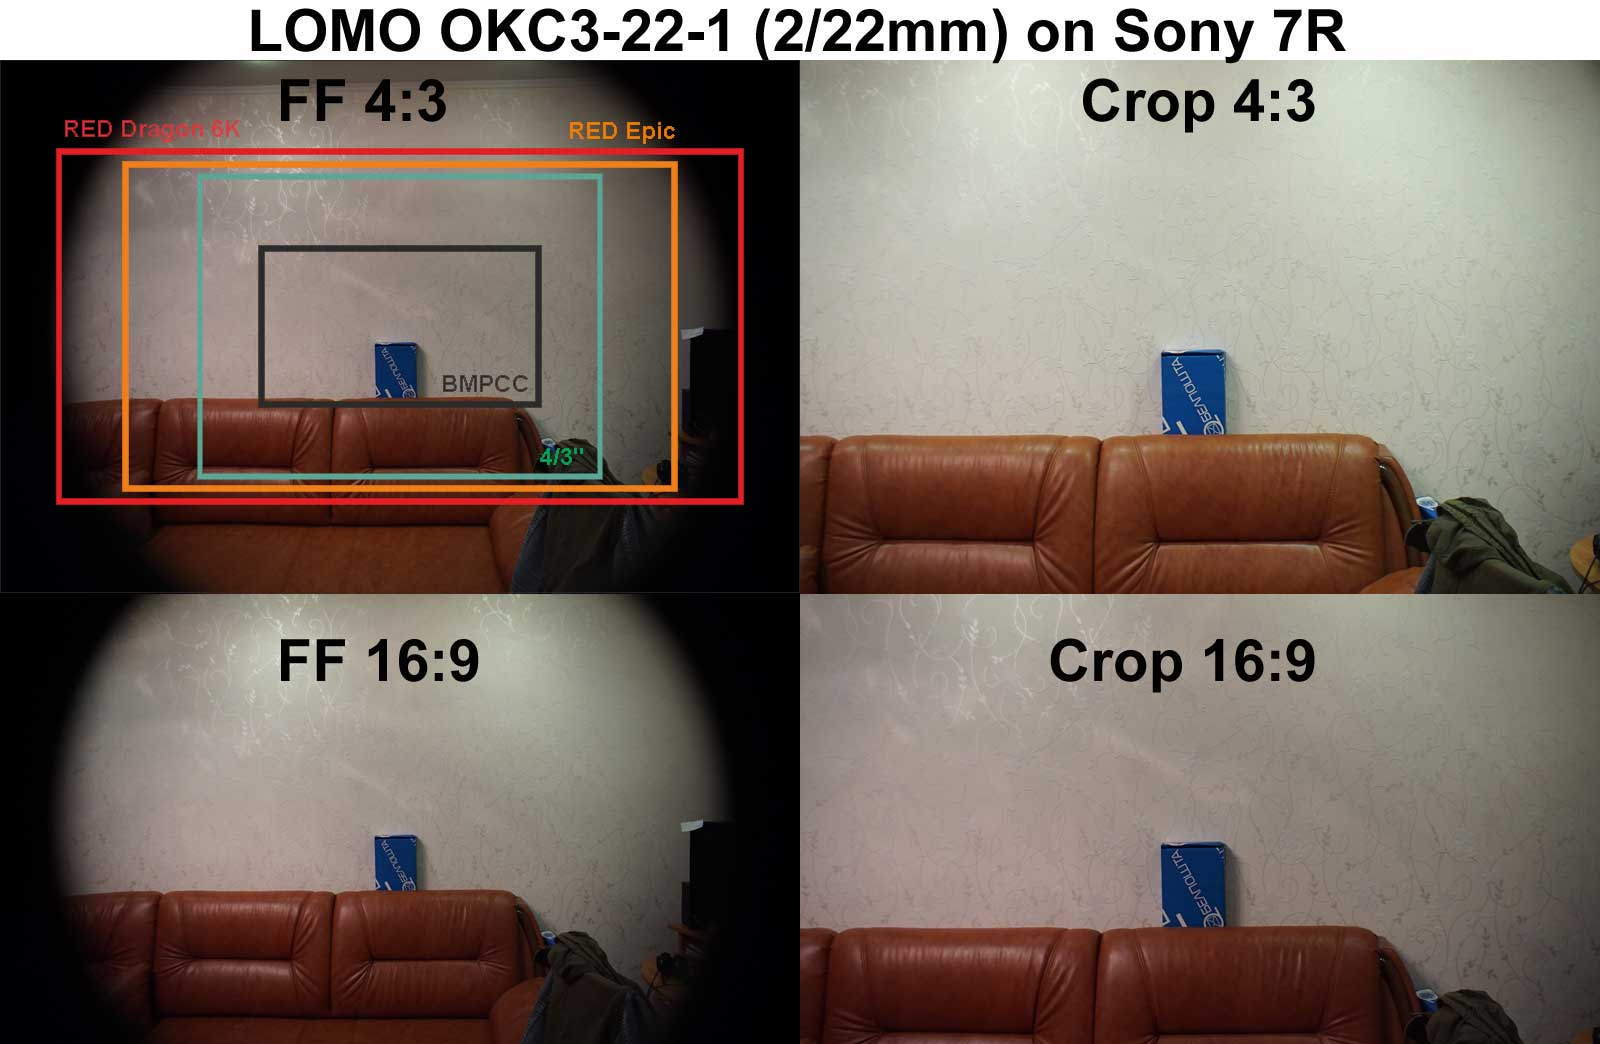 Coverage of LOMO OKC3-22-1 lens on Sony 7R camera